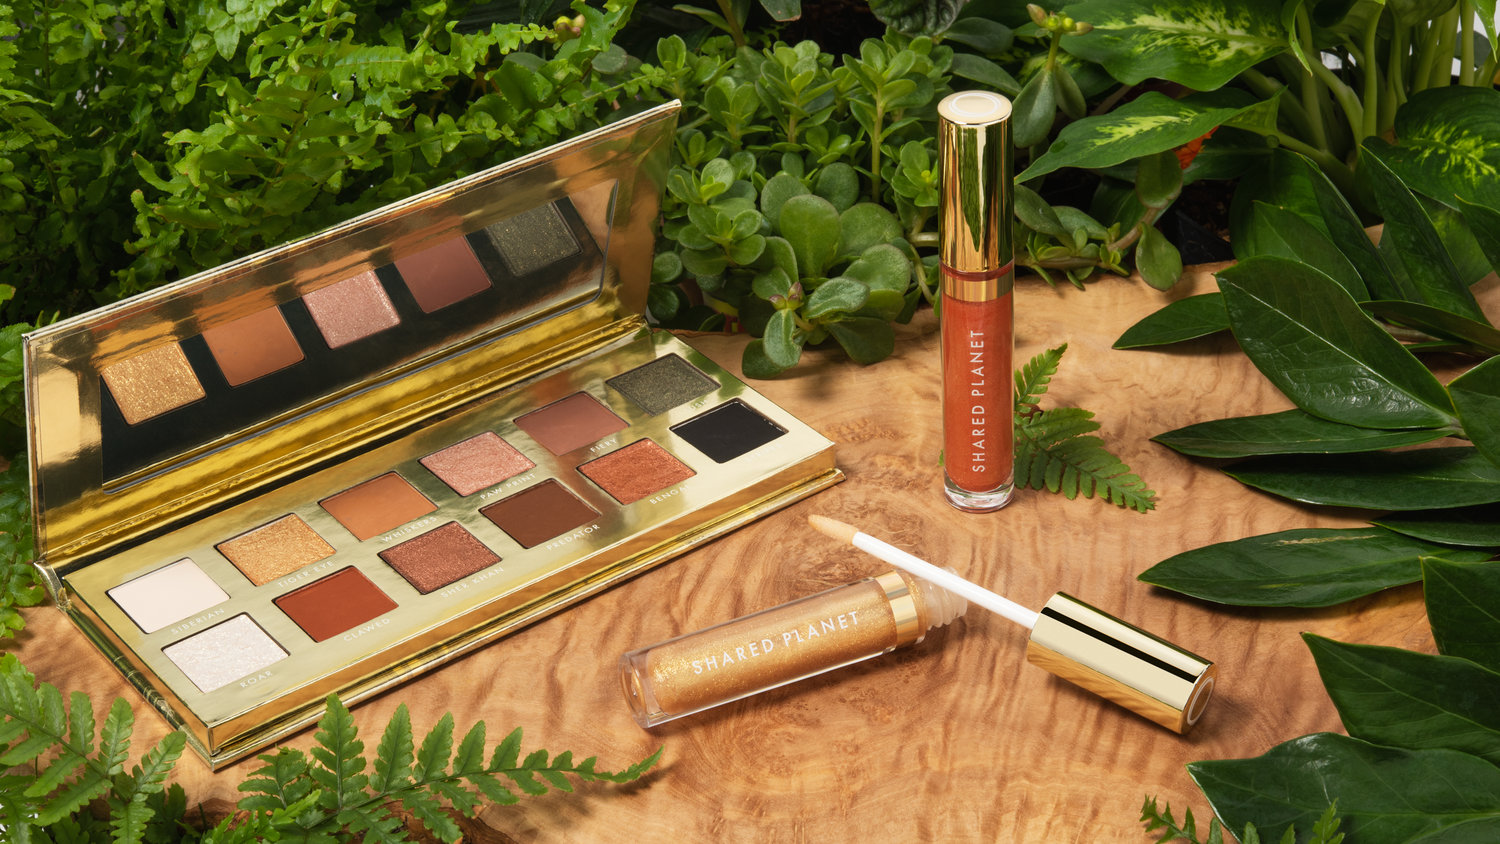 The Tiger Collection from Shared Planet, featuring an eyeshadow palette and two lip glosses